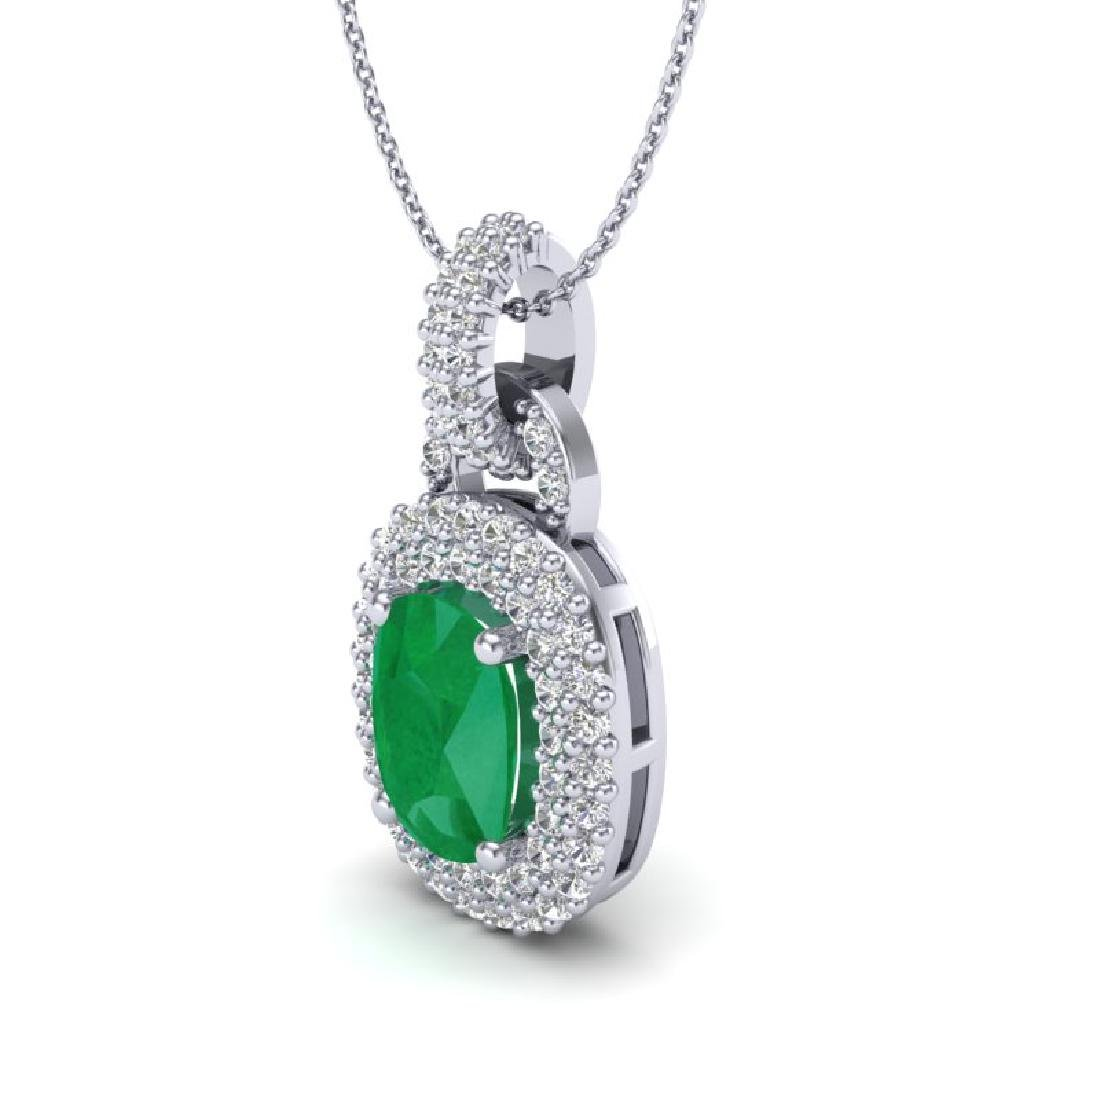 2.50 CTW Emerald & Micro Pave VS/SI Diamond Necklace - 2